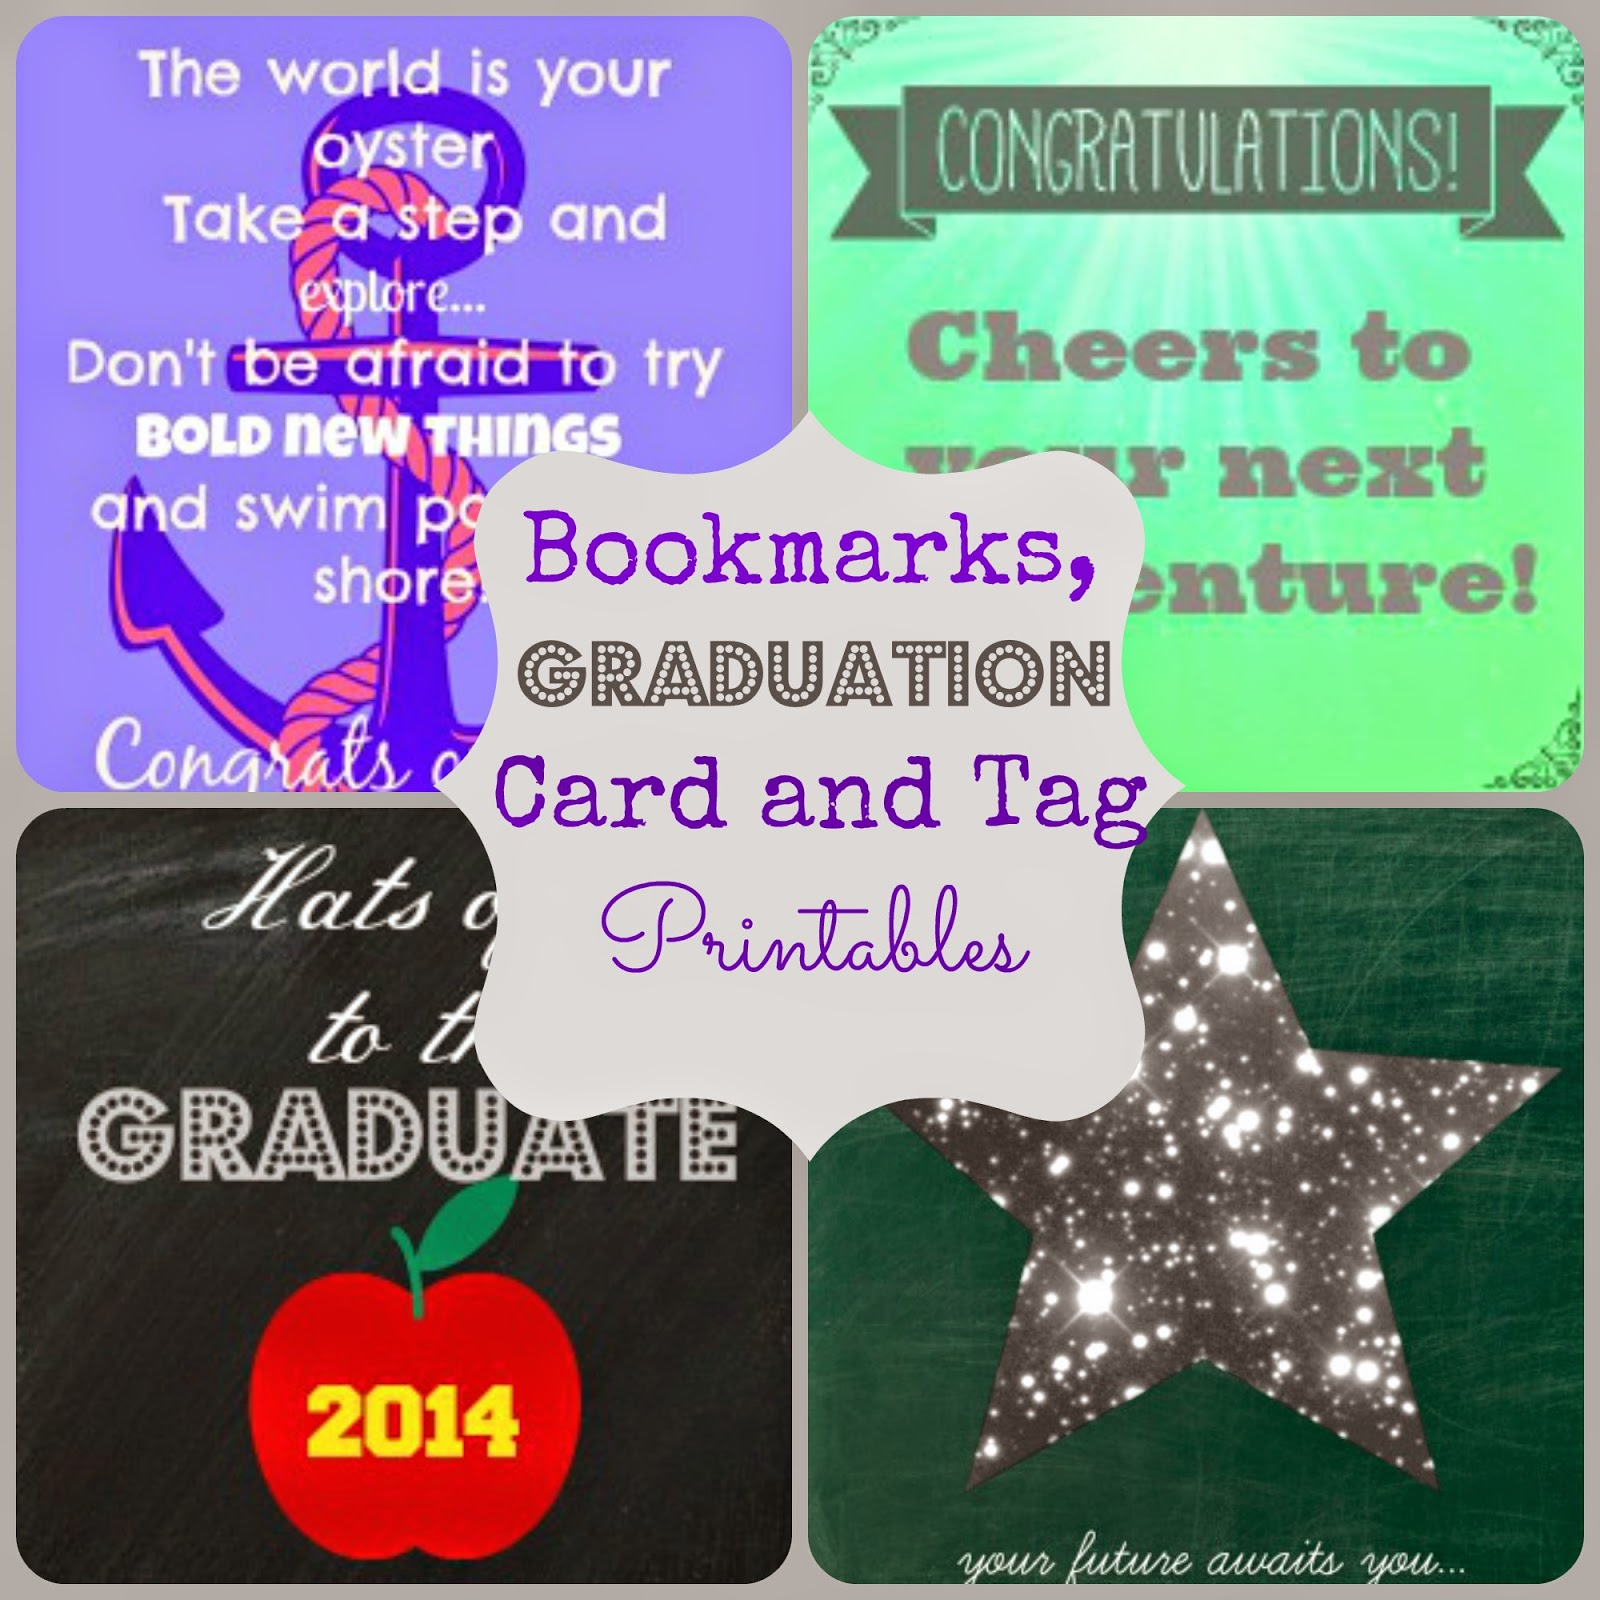 http://b-is4.blogspot.com/2014/05/bookmark-printables-and-graduation-card.html